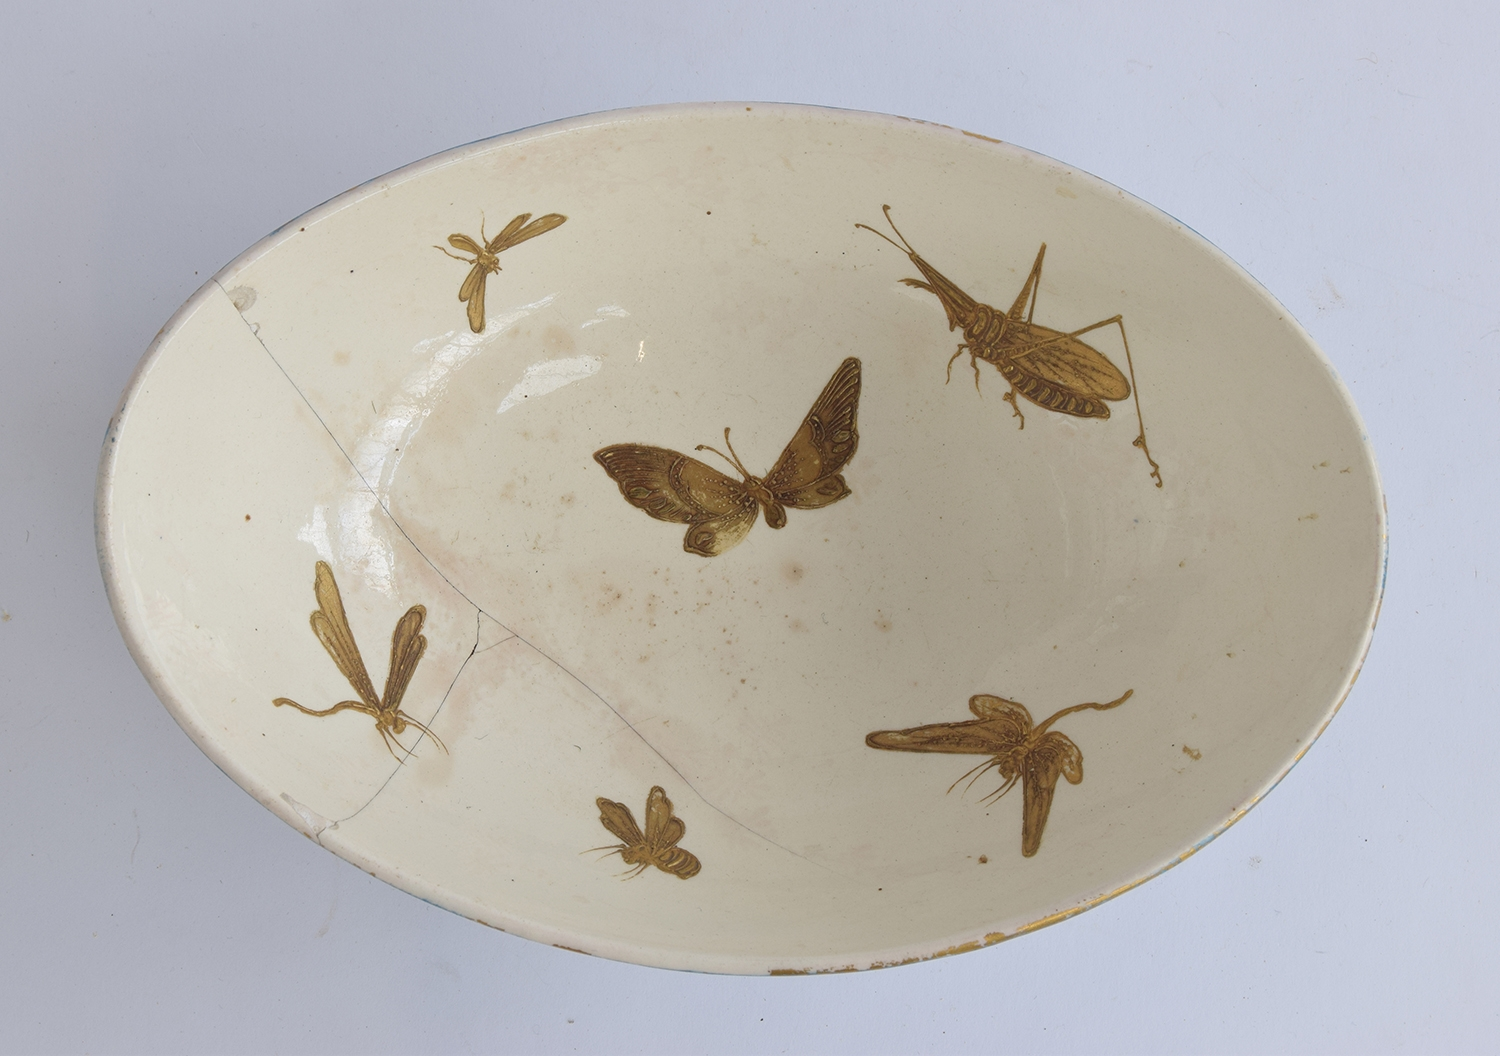 A Hautin Boulenger & Cie Choisy-le-Roi bowl, the white interior decorated with hand painted gold - Image 4 of 5